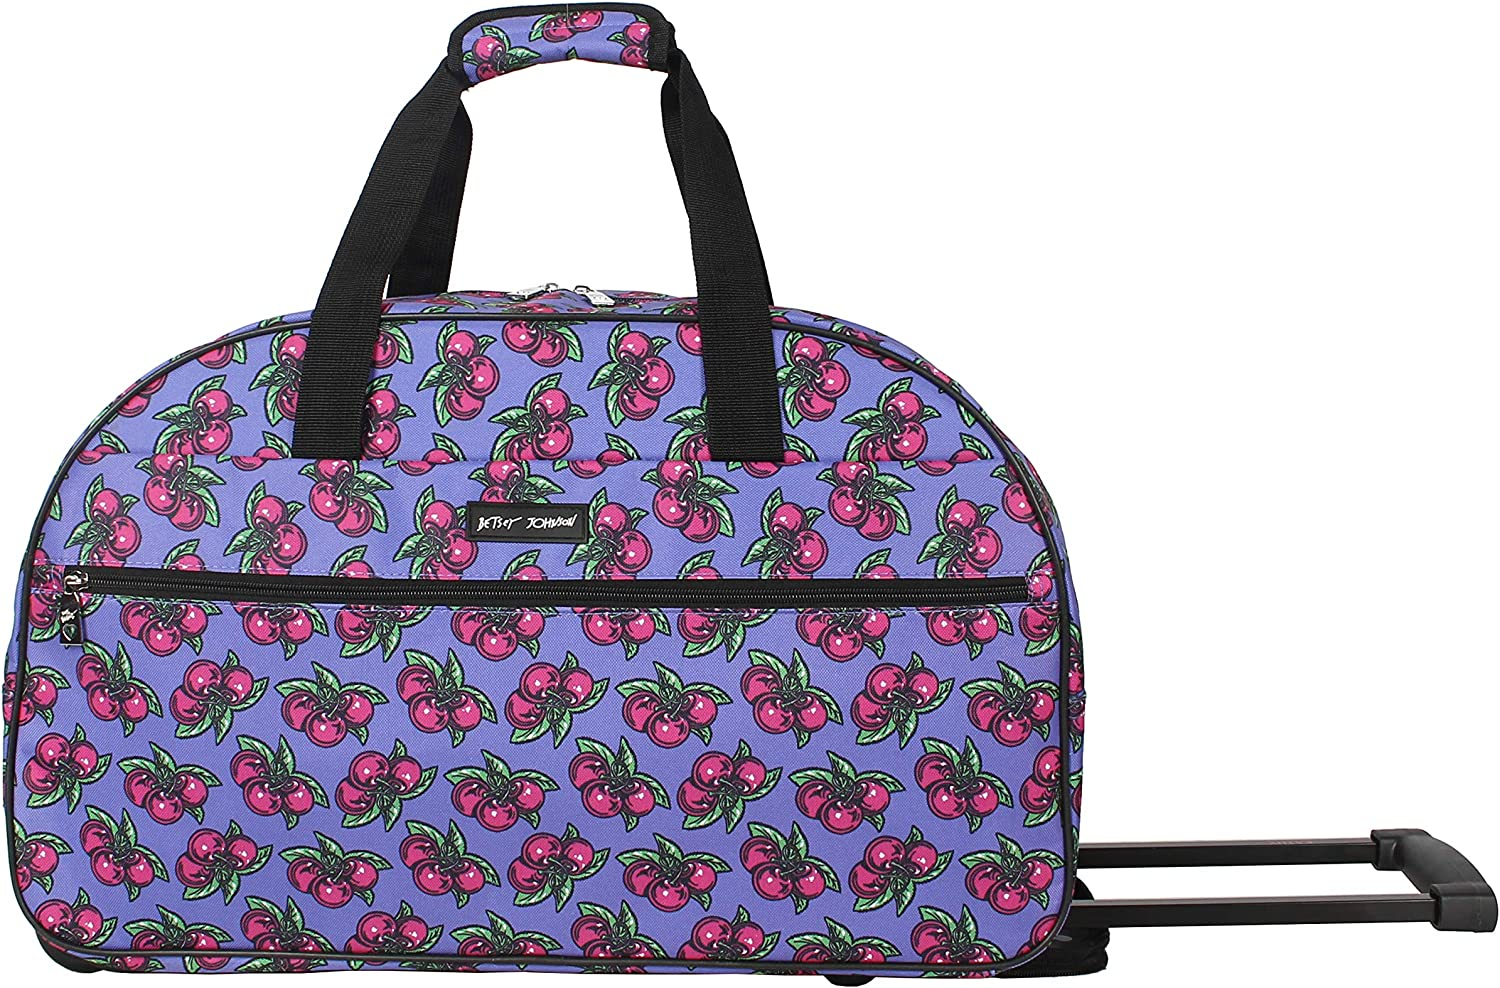 Lightweight Pattern 22 Inch Duffel Bag One Size, Cherry Bomb Weekender Overnight Business Travel Suitcase with 2 Rolling Spinner Wheels Betsey Johnson Designer Carry On Luggage Collection